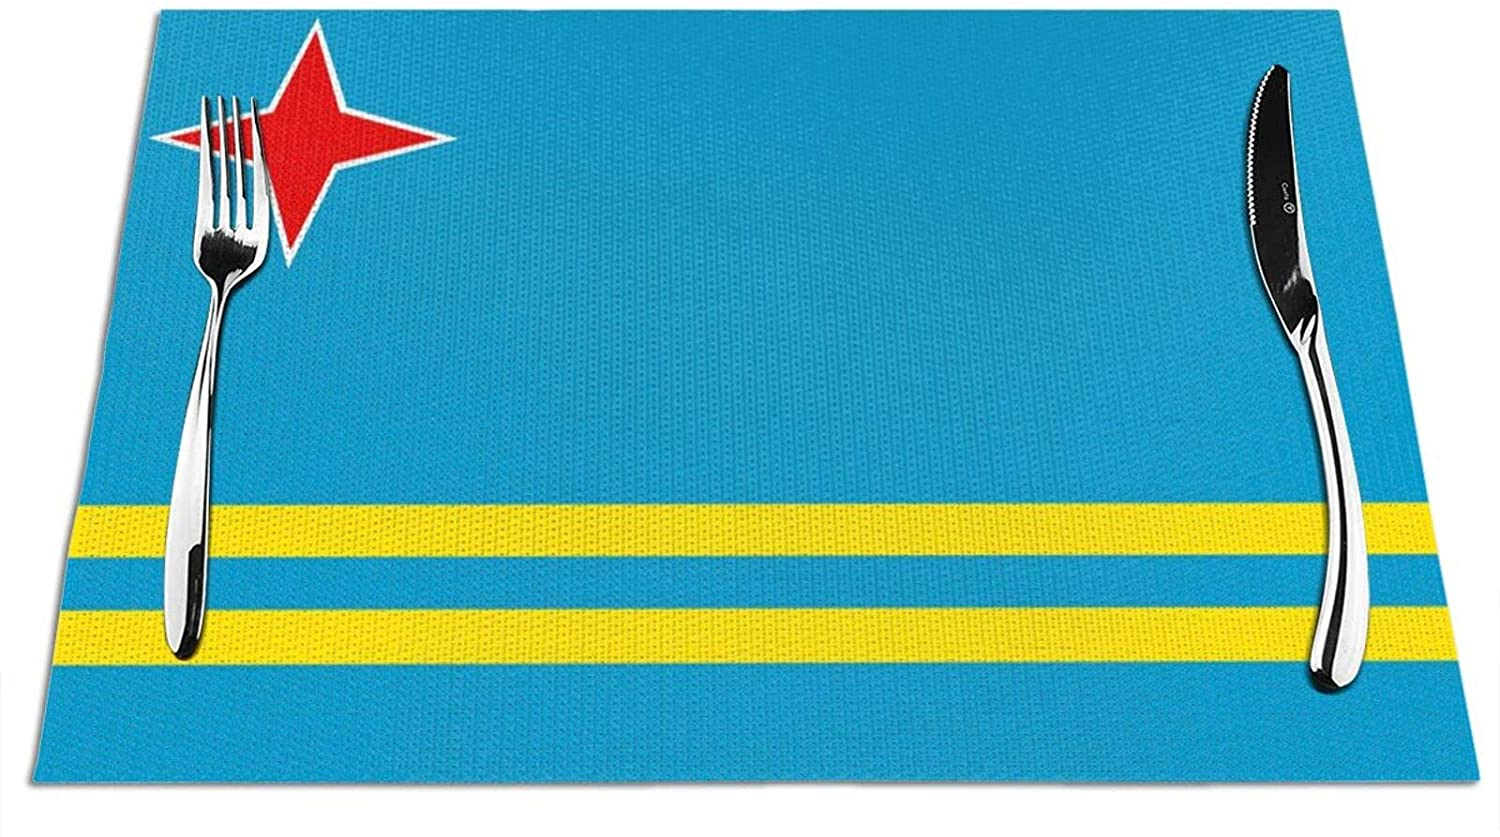 OHMYCOLOR Aruba Flag Placemats for Dining Table Mats Washable Non-Slip Woven Placemat Kitchen Heat Resistant Easy to Scrub Clean Prevent Stains 1 Pcs